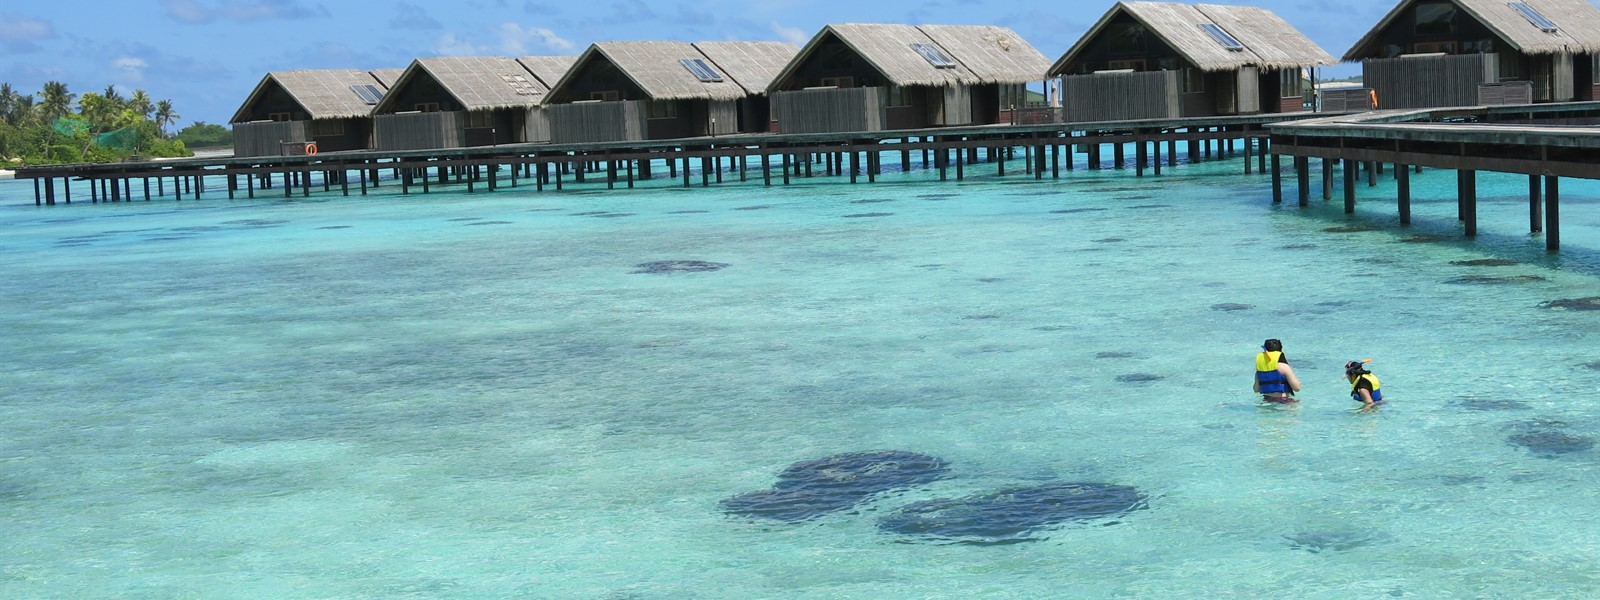 Picture of overwater bungalows in the Maldives.